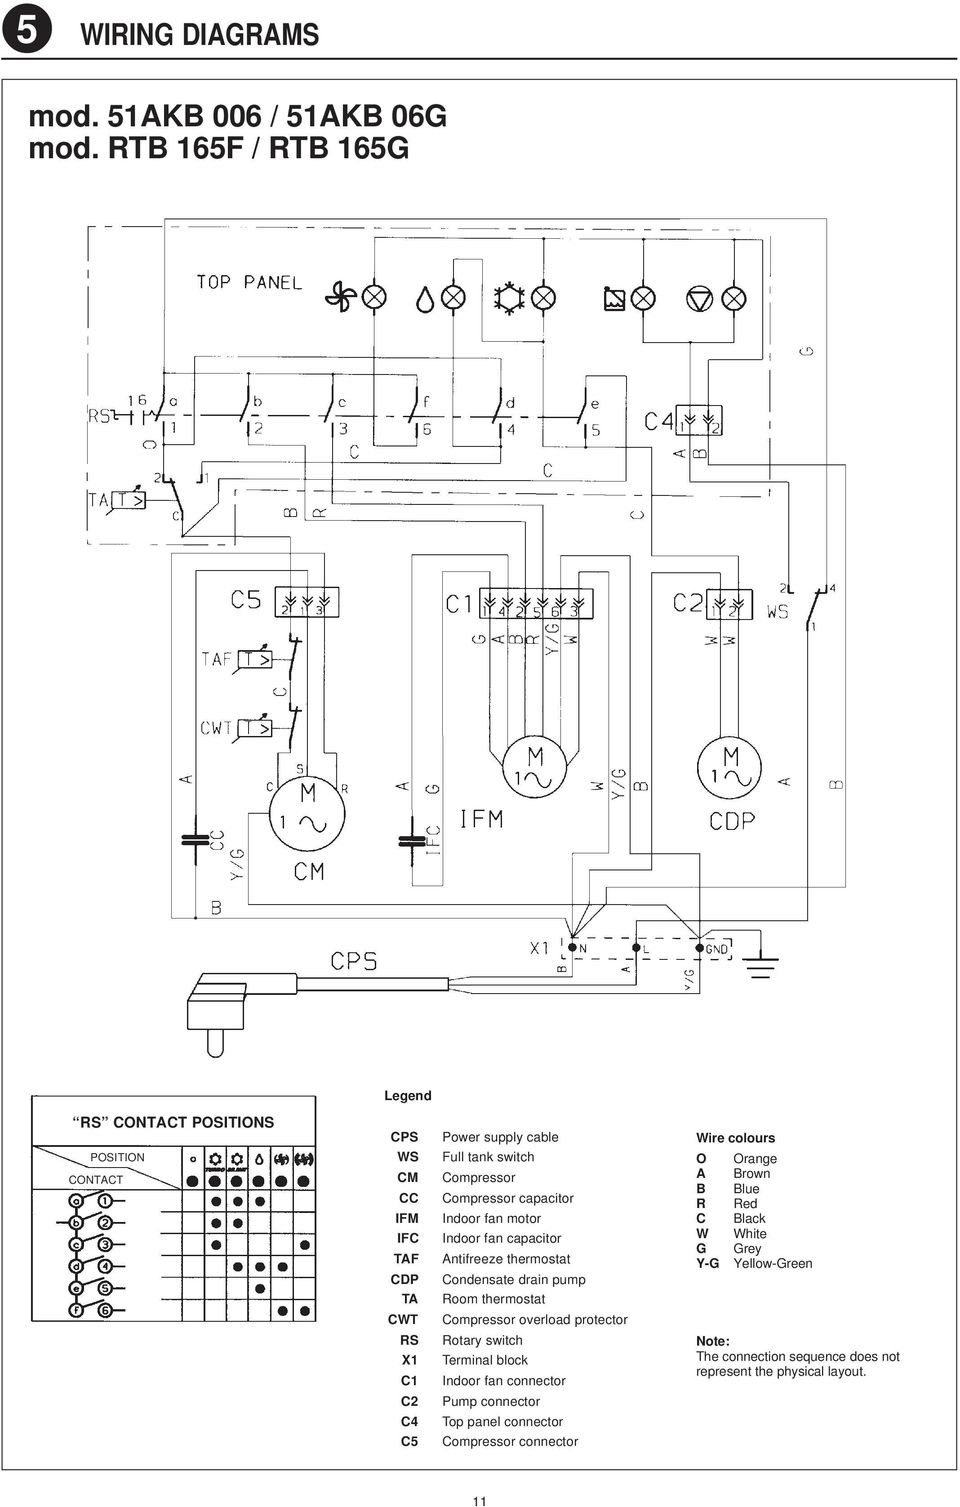 Service Manual Portable Air Conditioners 51akm 006g 51akb Rtb Pump Thermostat Wiring Diagram On For Rotary Switch Compressor Capacitor Indoor Fan Motor Antifreeze Condensate Drain Room 12 5 Diagrams